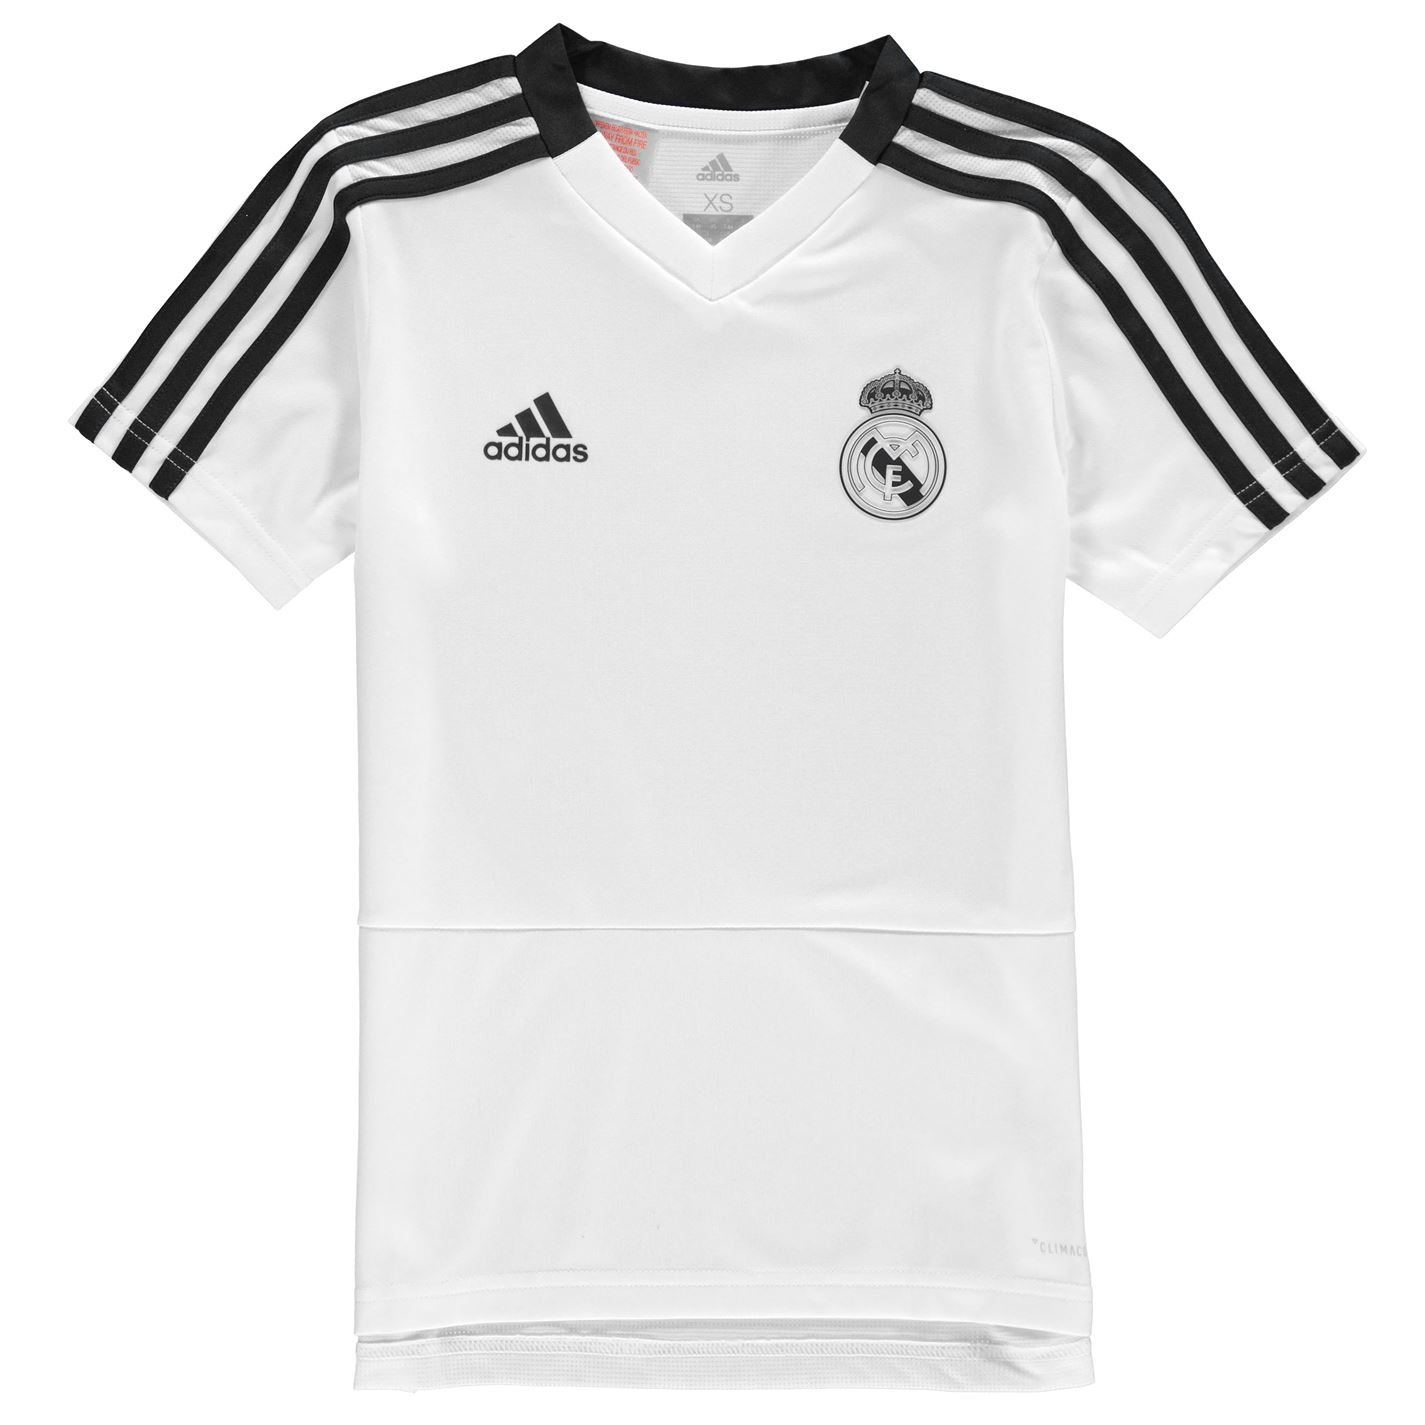 adidas 2018-2019 Real Madrid Training Football Soccer T-Shirt Jersey (White) - Kids